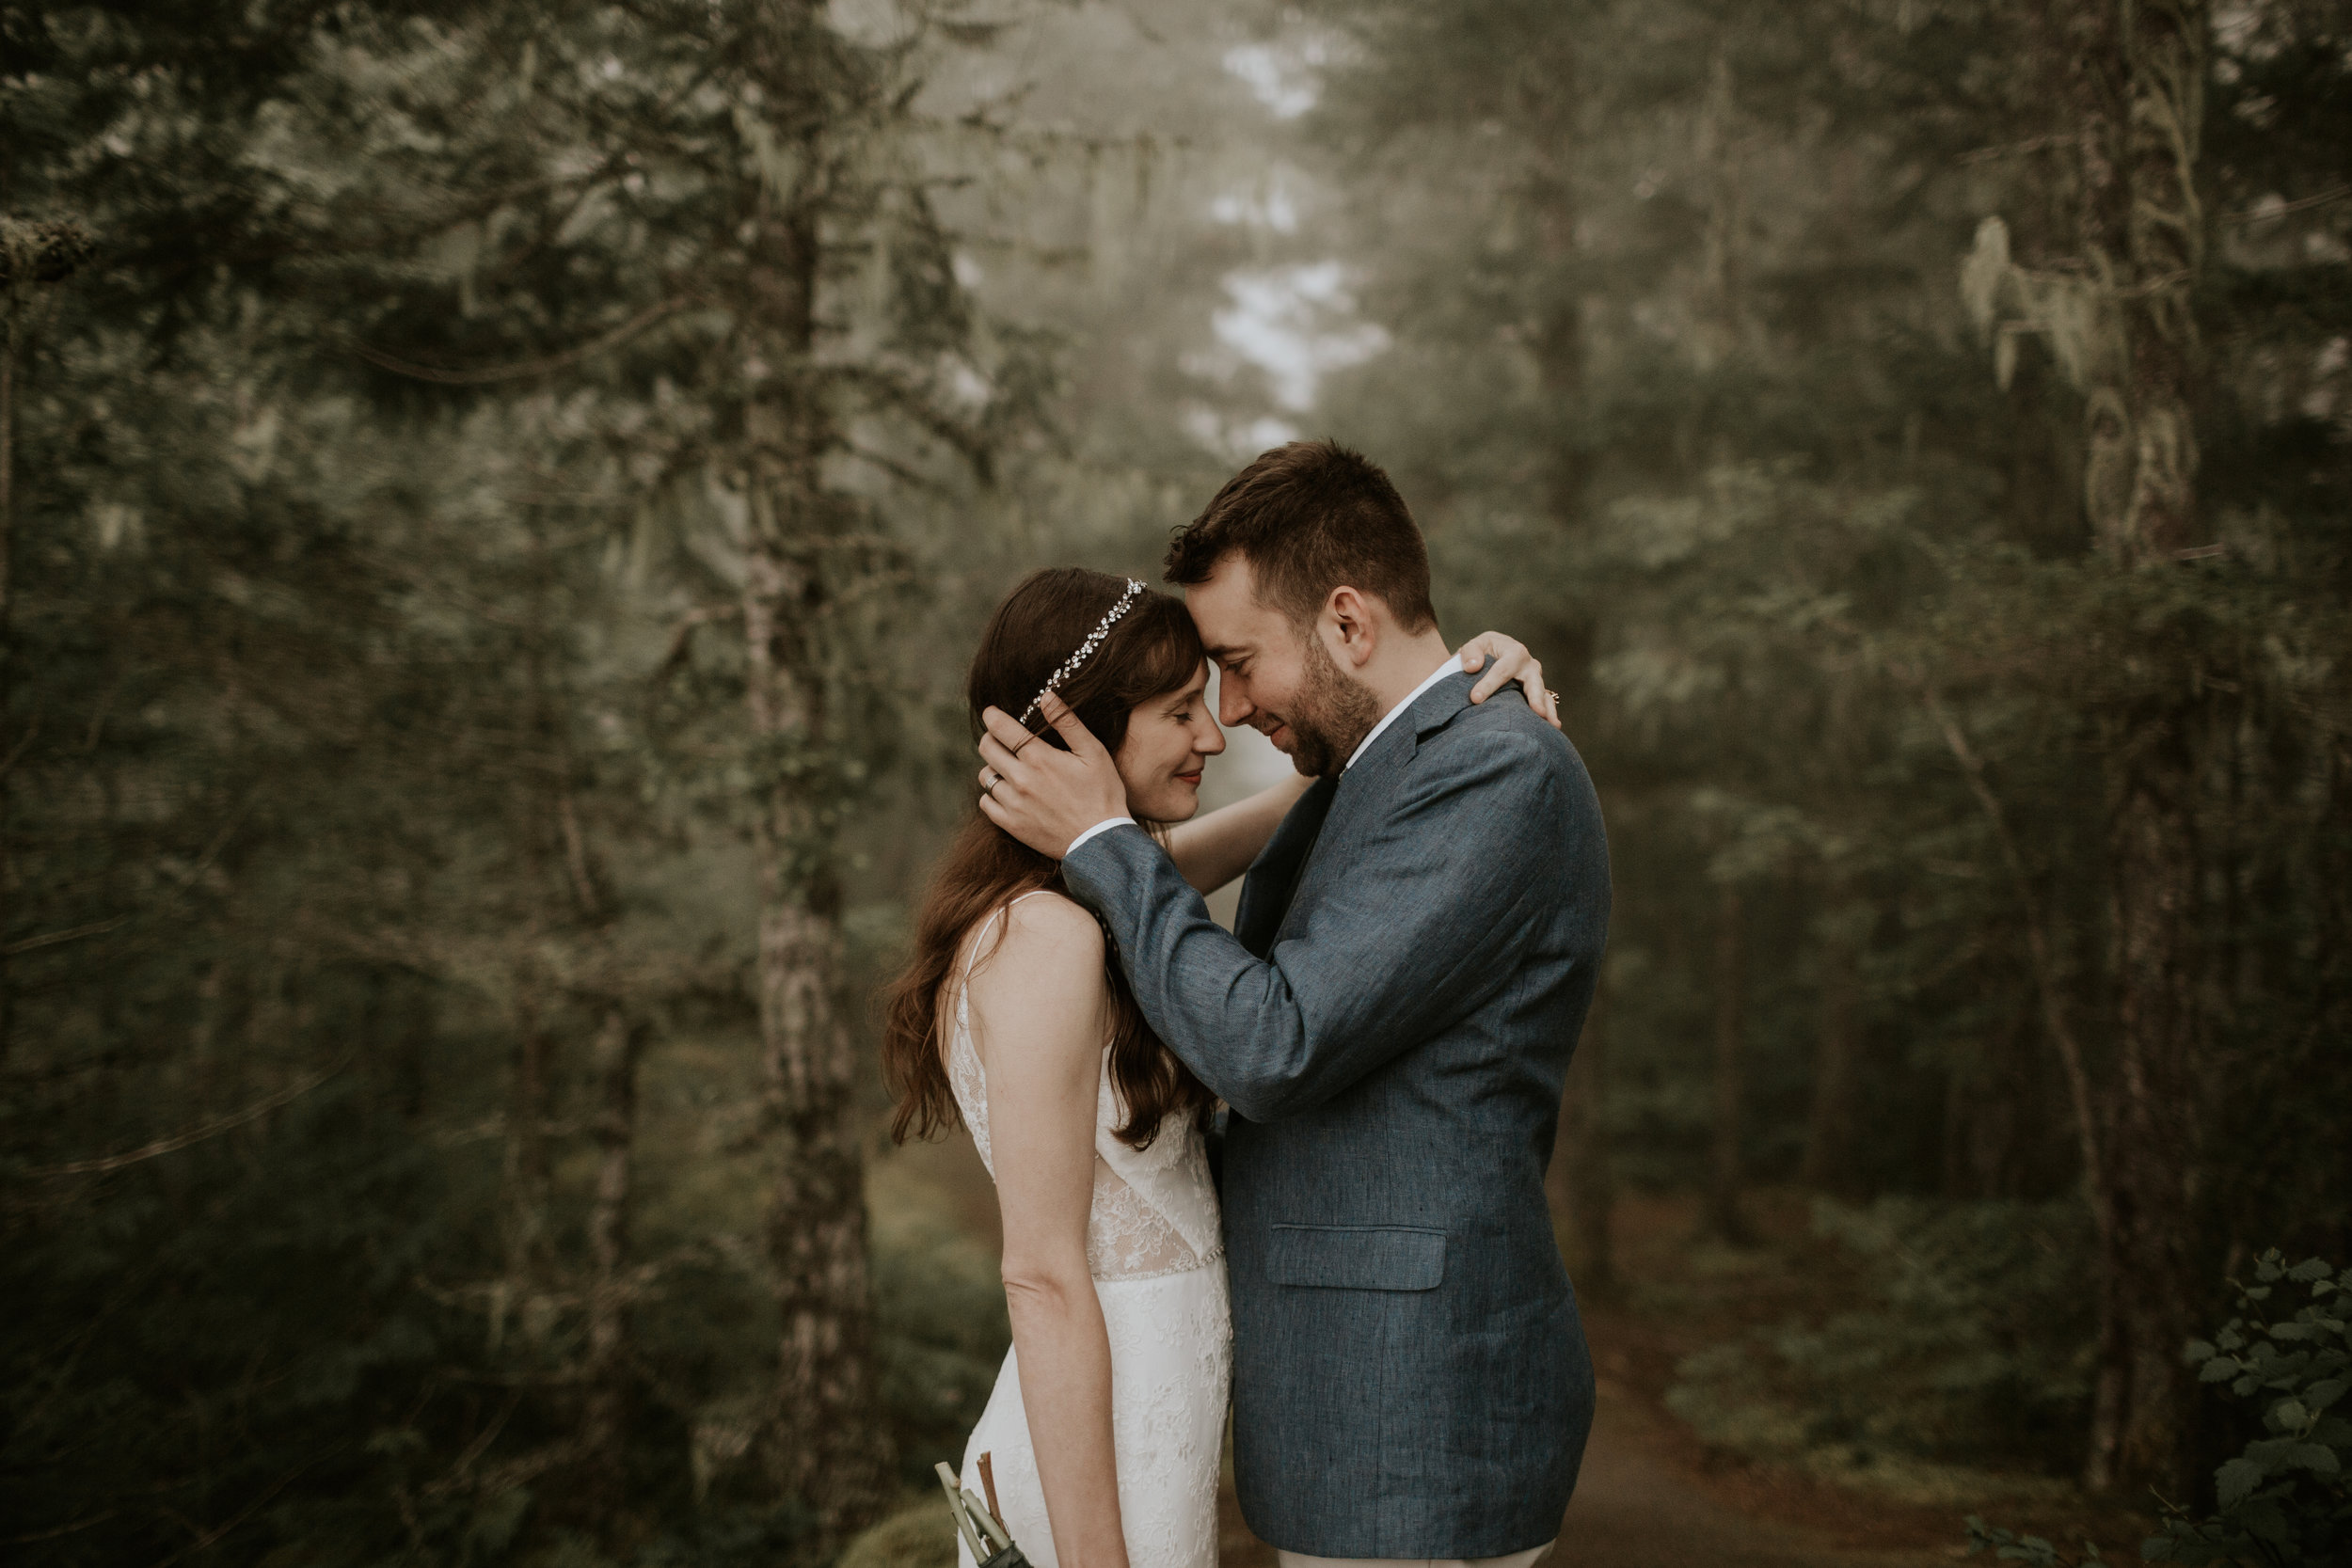 PNW-elopement-wedding-engagement-olympic national park-port angeles-hurricane ridge-lake crescent-kayla dawn photography- photographer-photography-kayladawnphoto-160.jpg